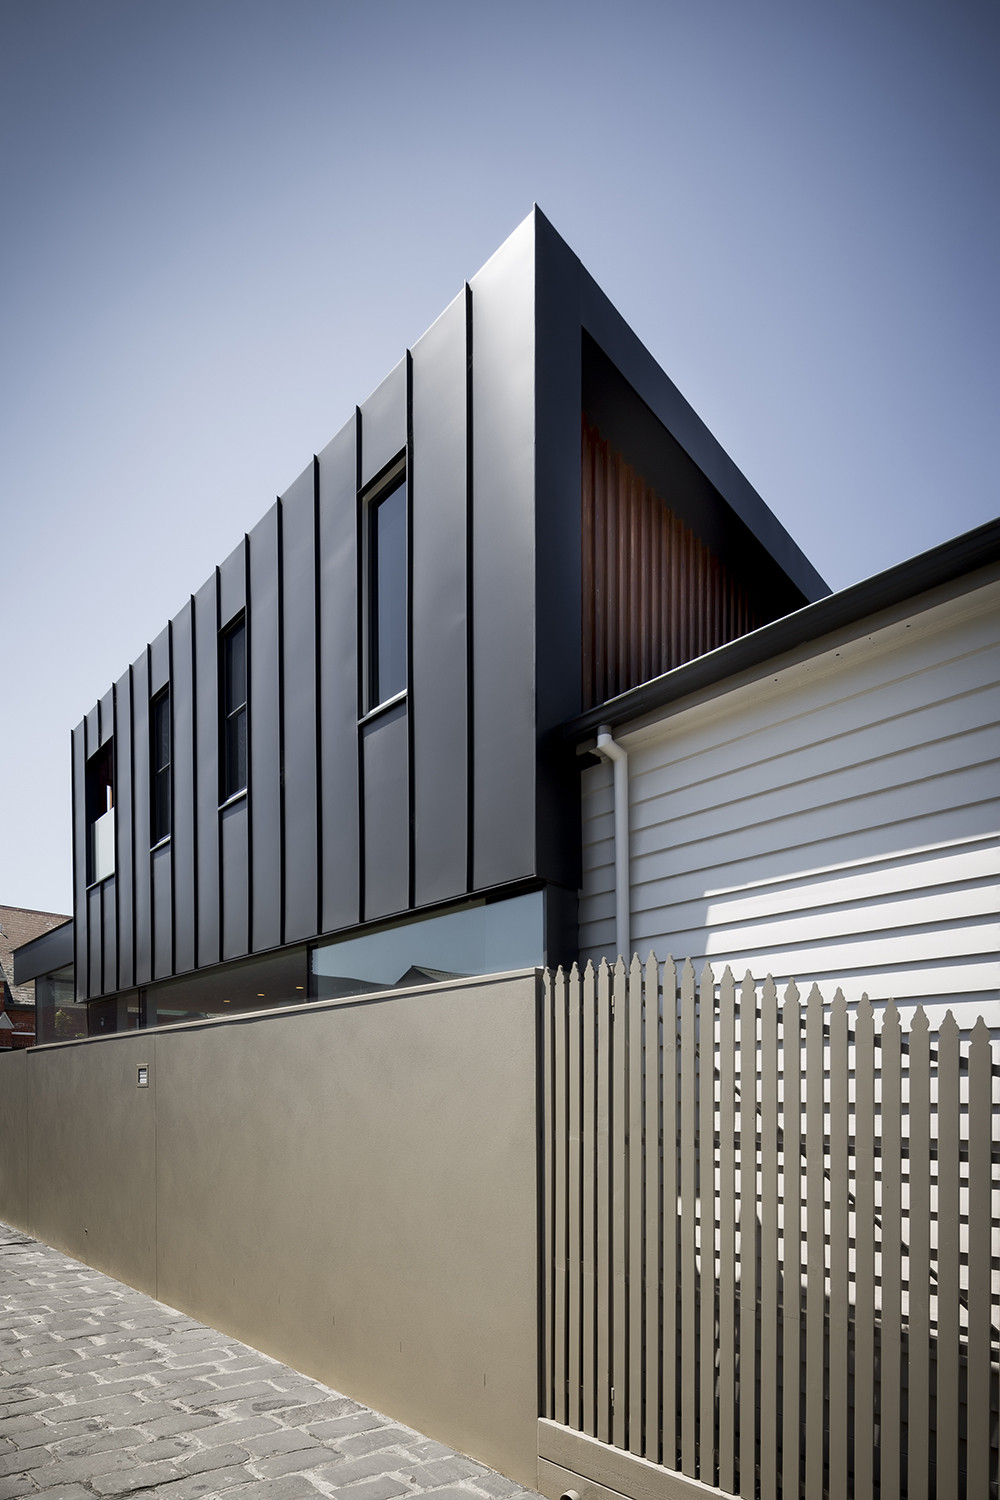 Armadale House by Mitsuori Architects (via Lunchbox Architect)